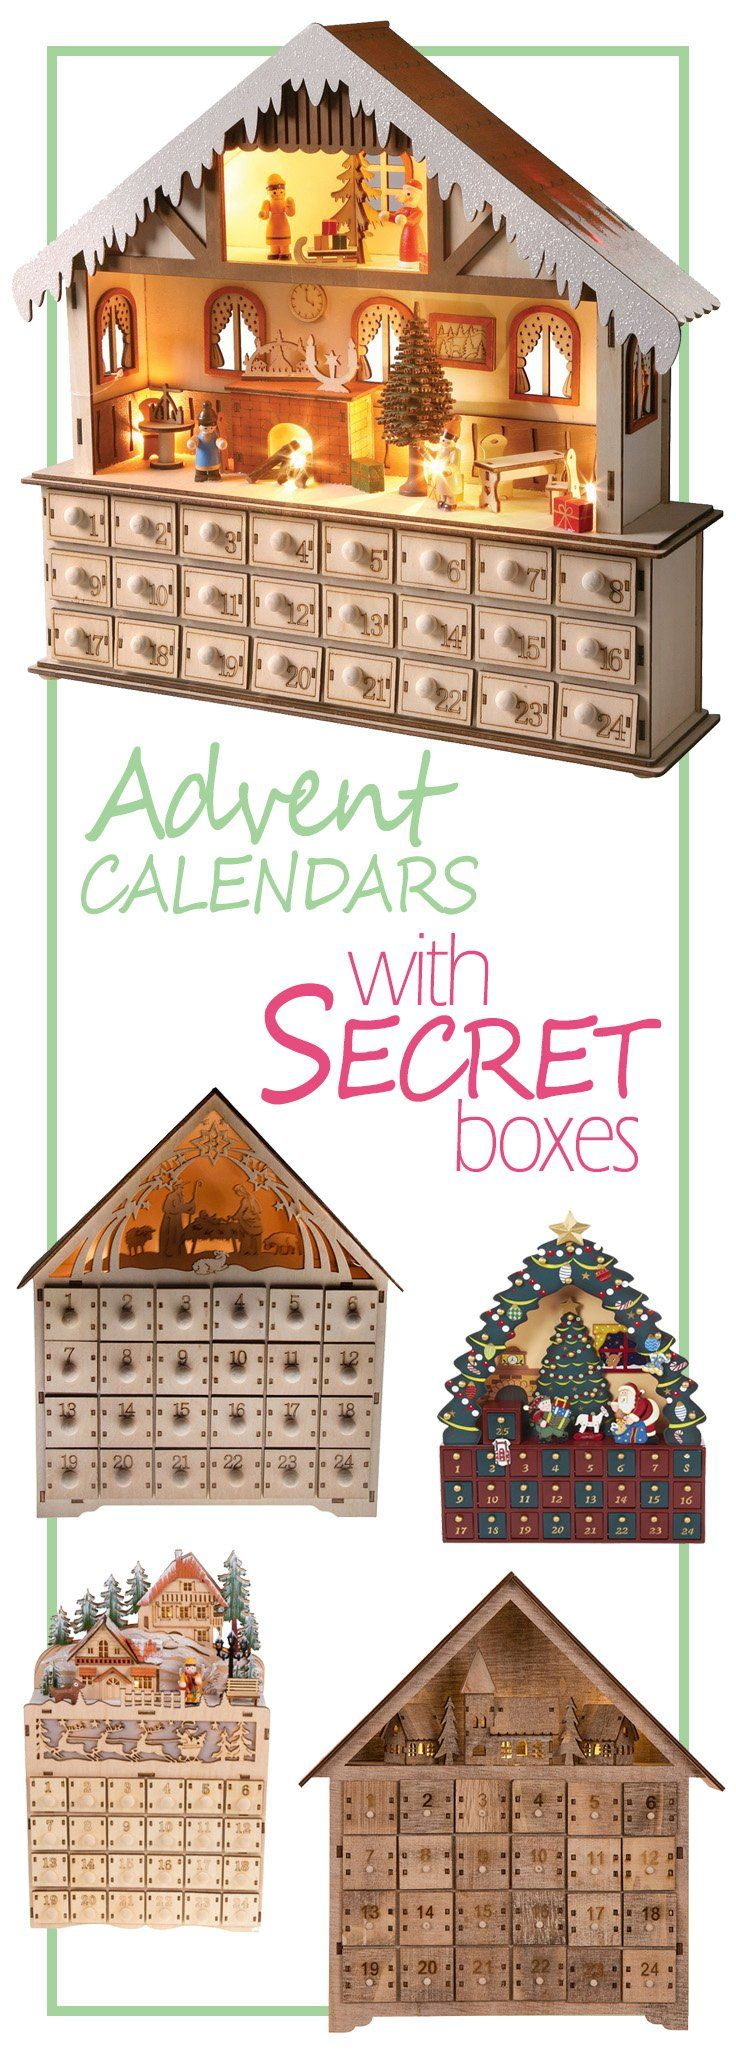 Advent Calendars With Secret Boxes Advent Calendar Gifts